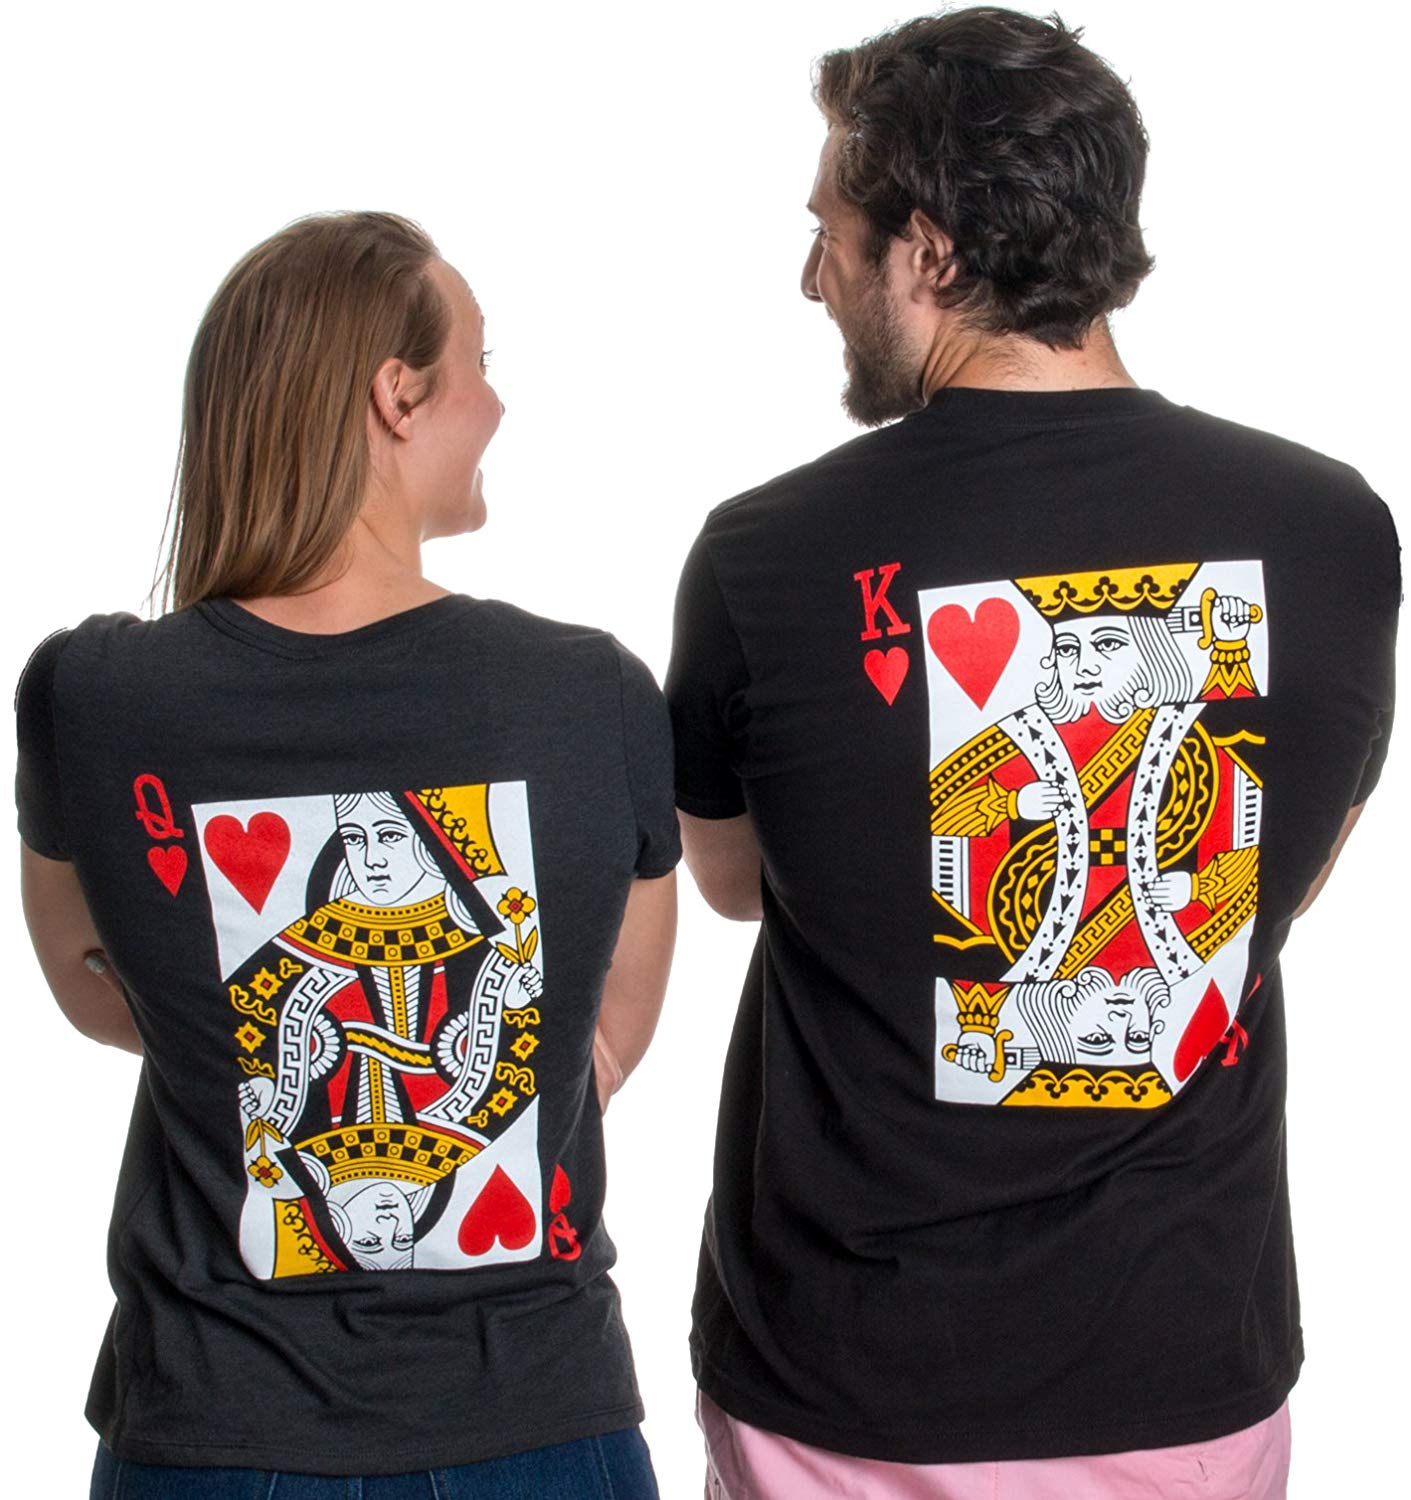 King/Queen   Matching Couples Husband Wife Bridal Wedding Newlywed T-Shirts